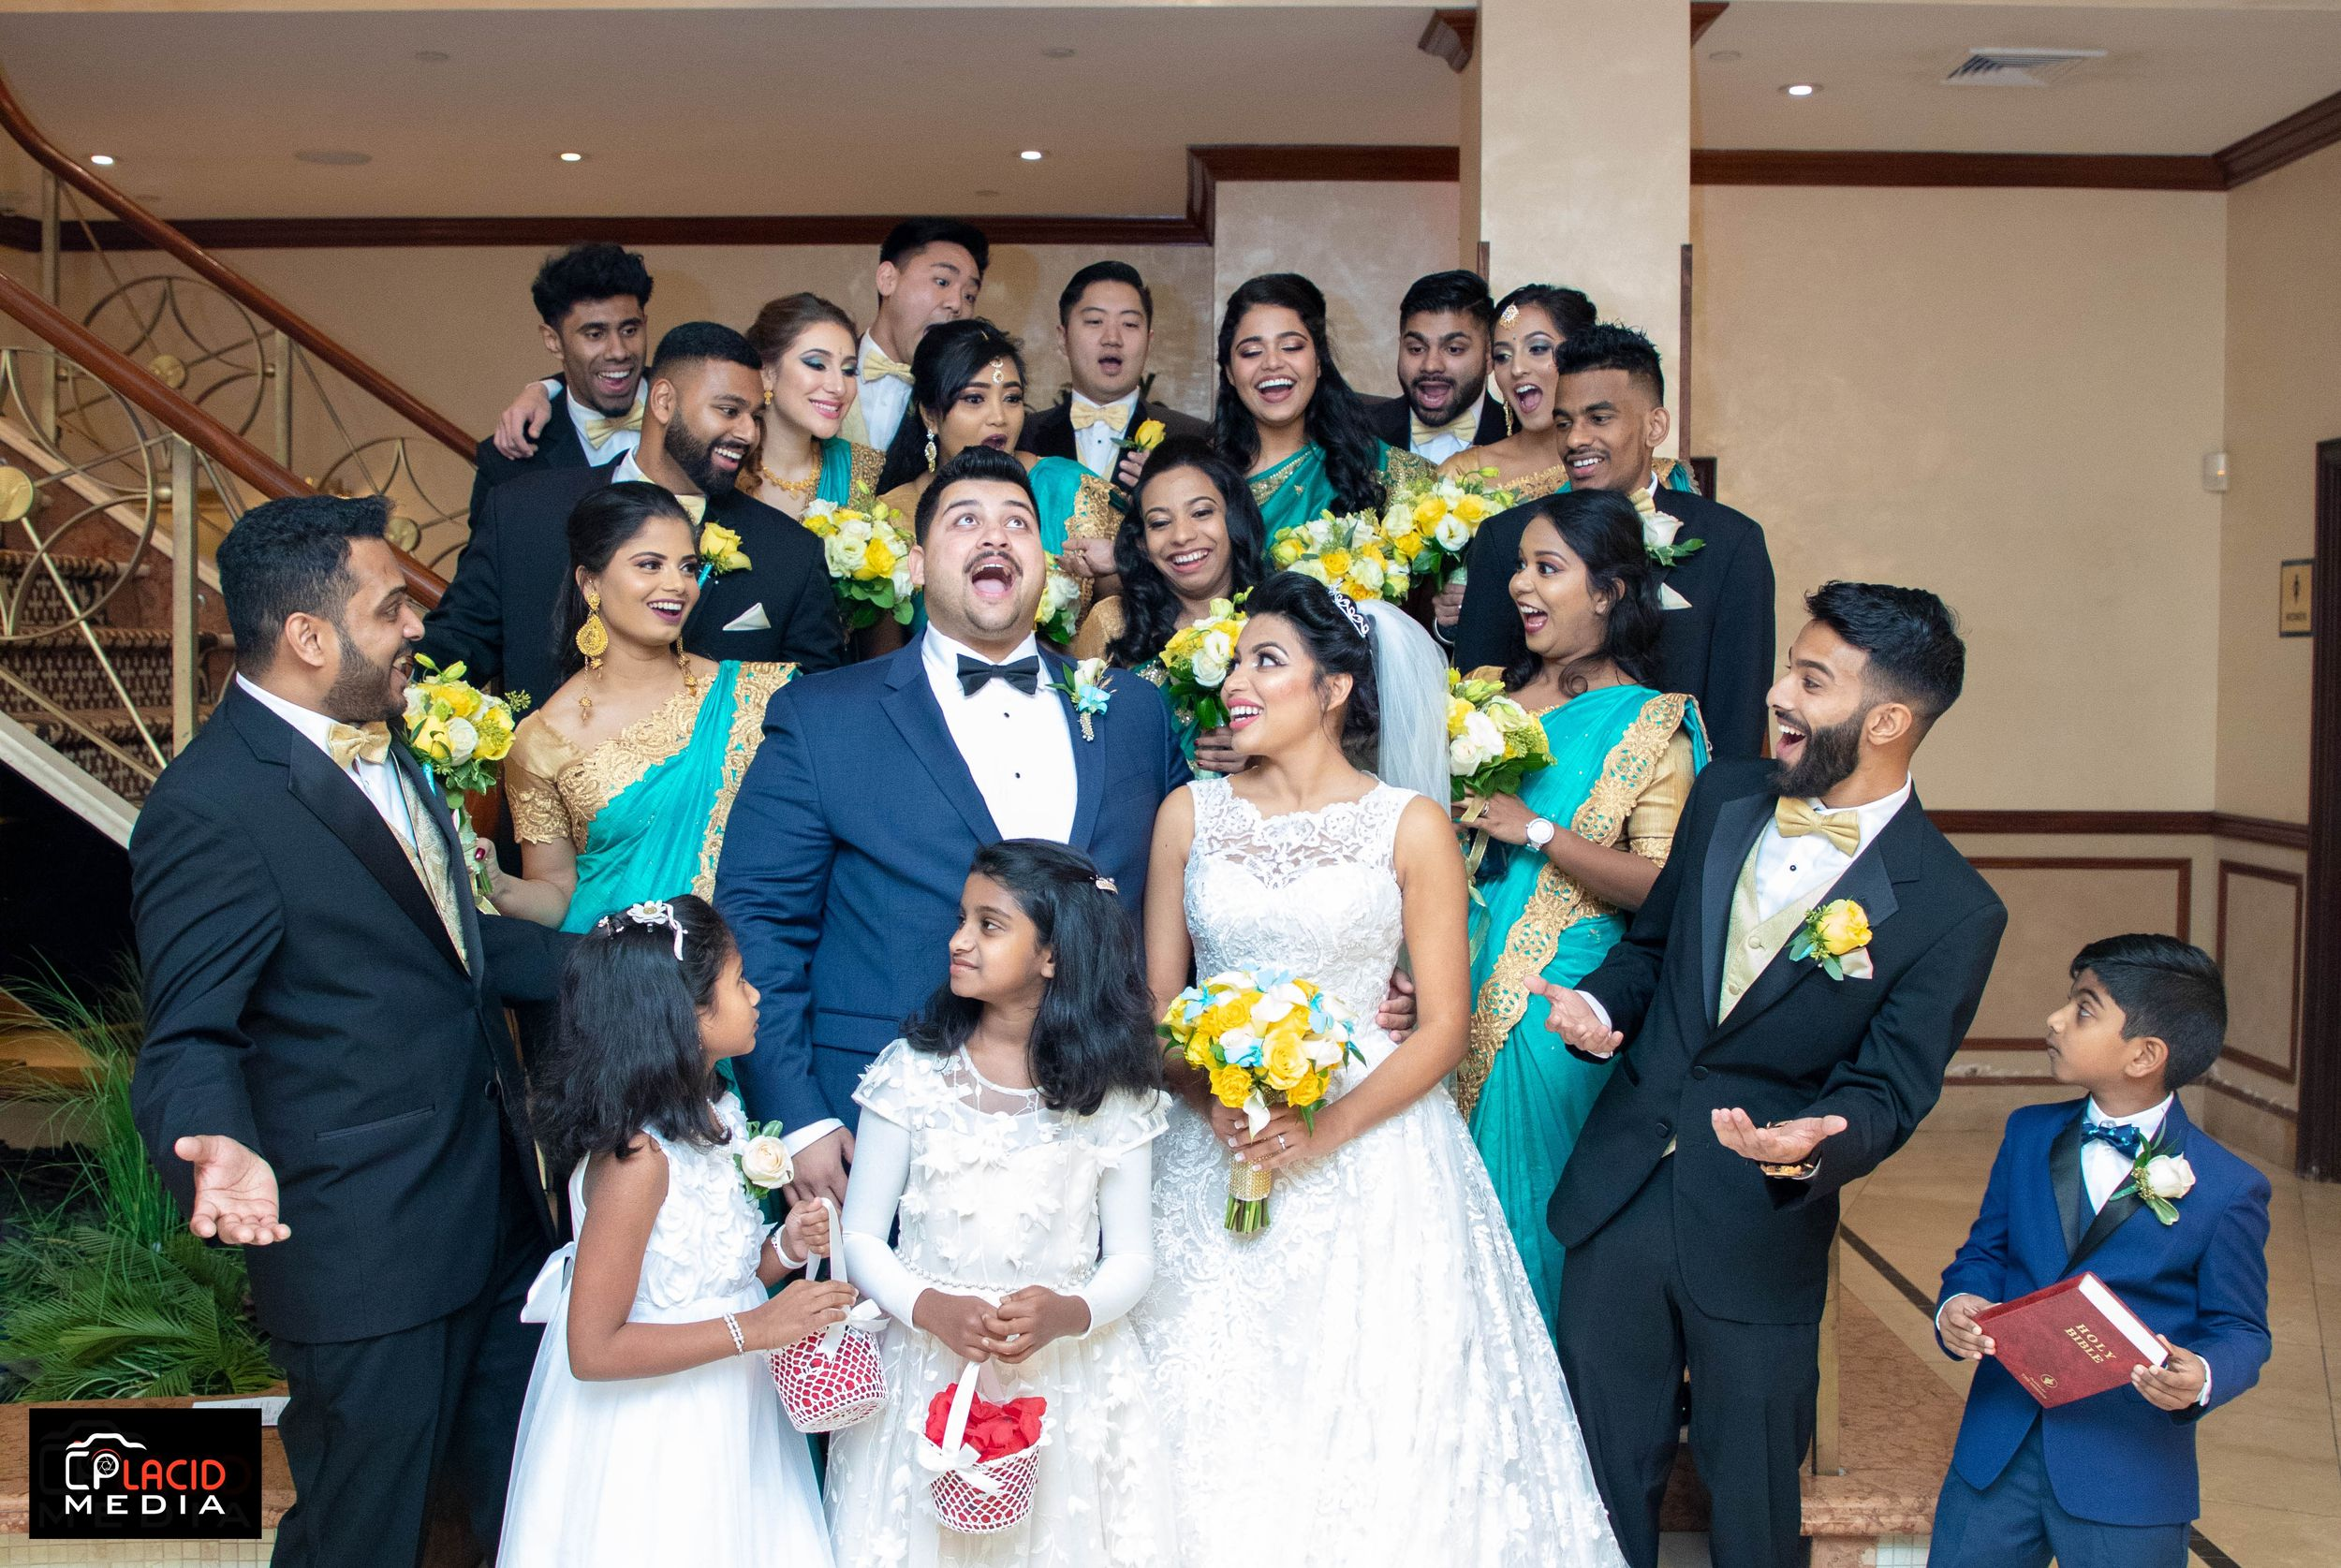 Bridesmaids and Groomsmen laughing on wedding day